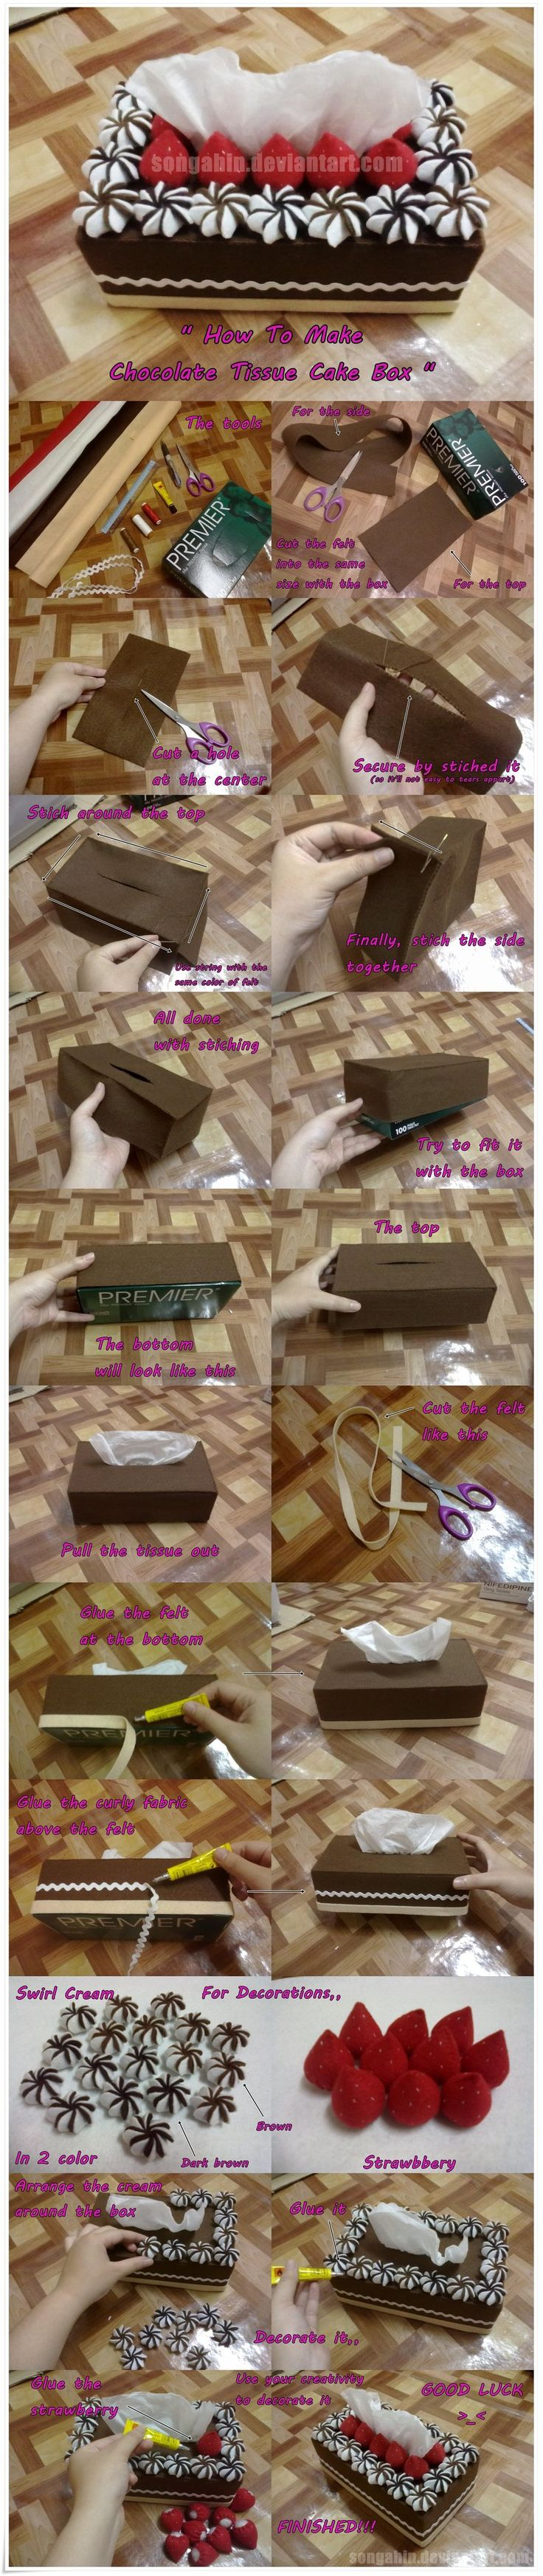 Chocolate Tissue Cake Box.. by SongAhIn.deviantart.com on @deviantART